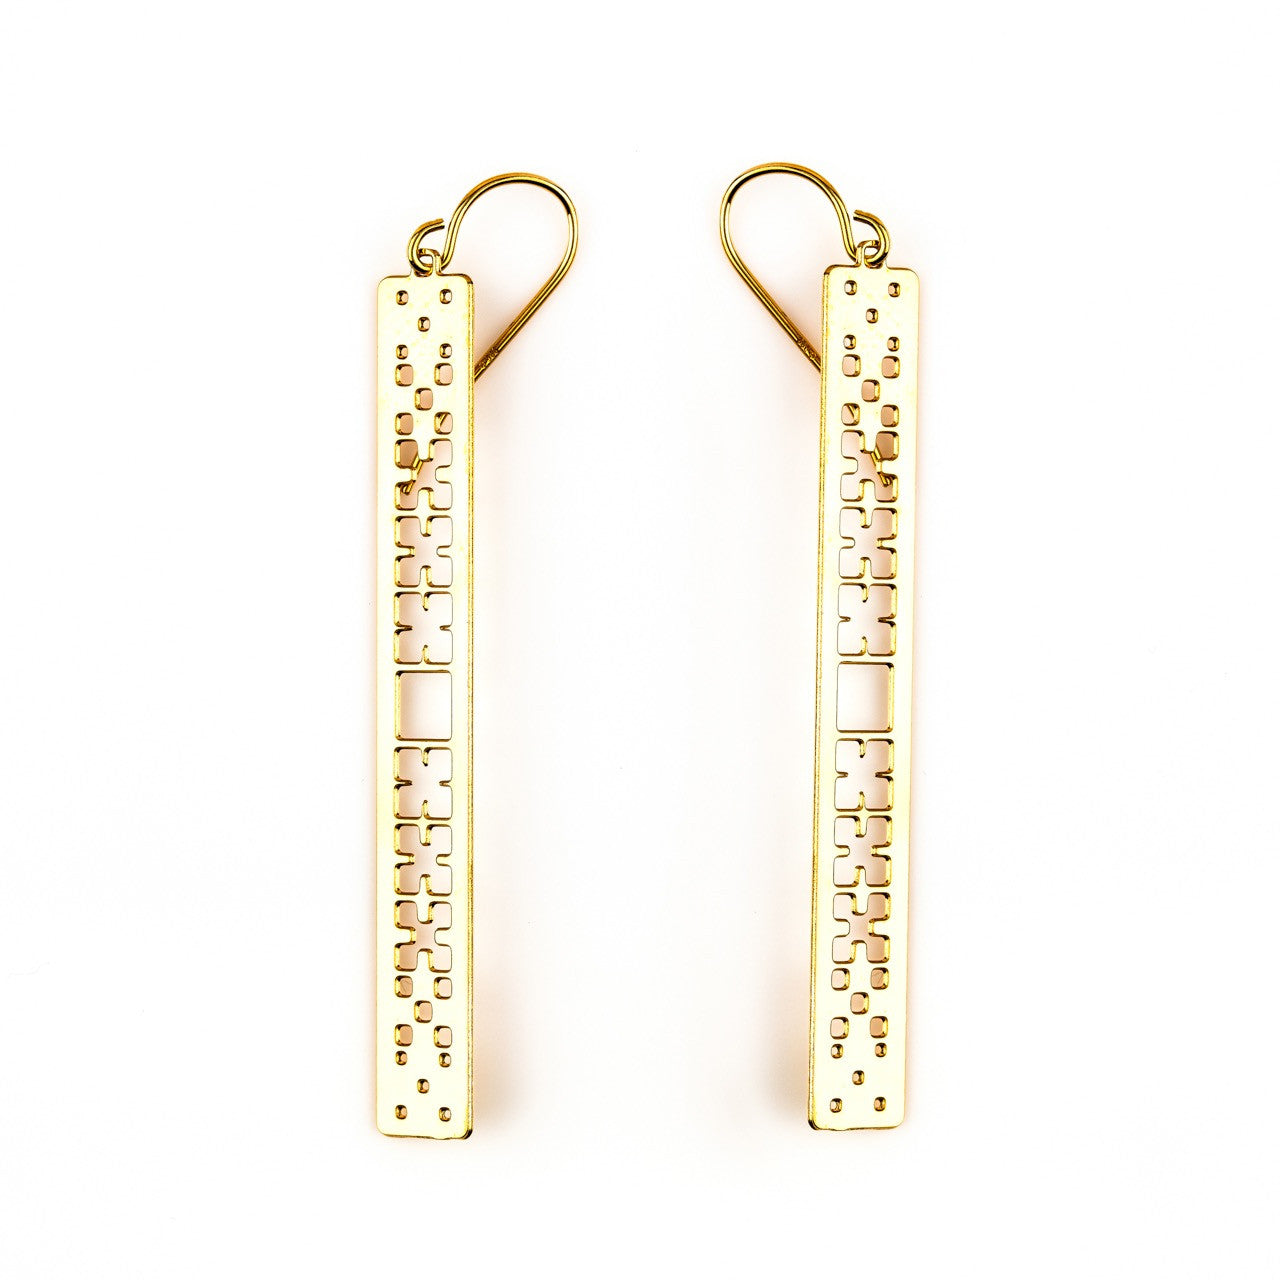 #8 earrings gold